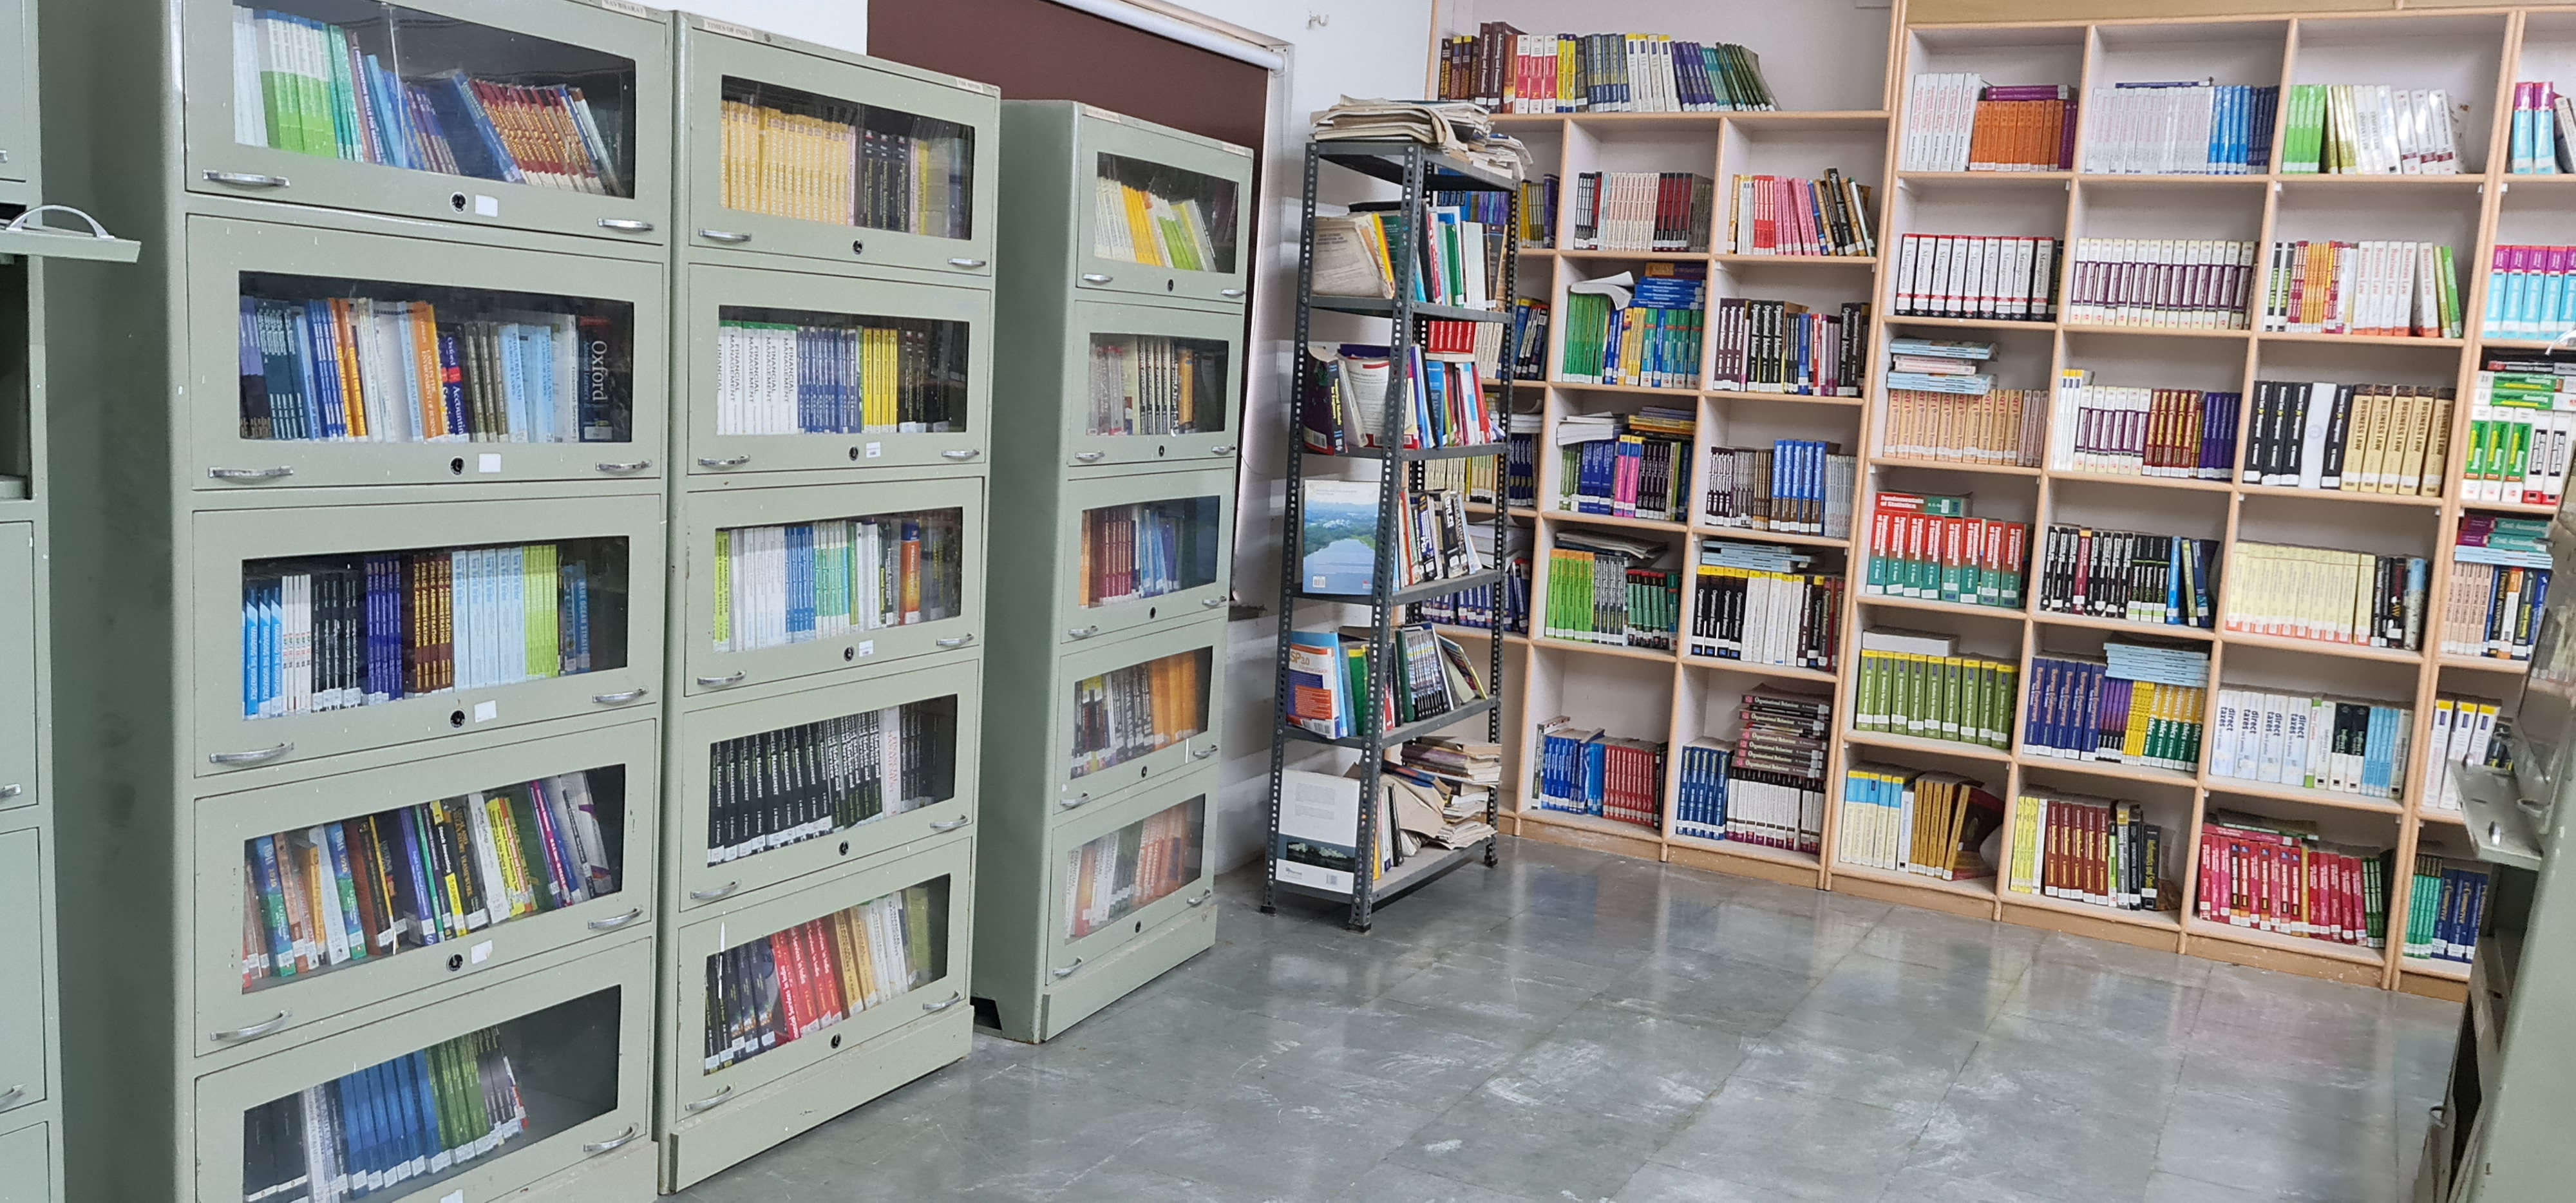 Library with reference books, journals